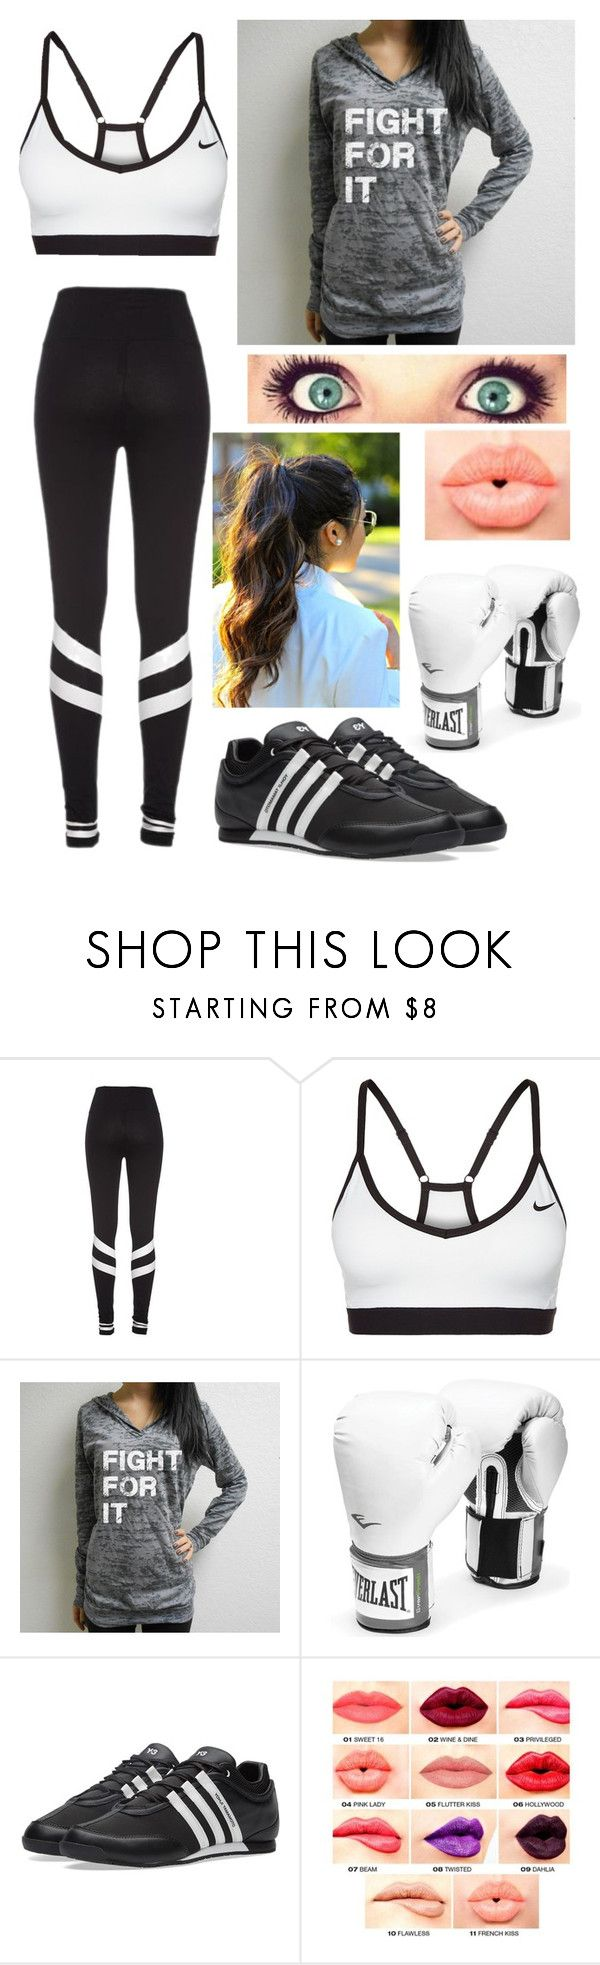 """Boxing"" by livylash ❤ liked on Polyvore featuring NIKE, Everlast, NYX and plus size clothing"